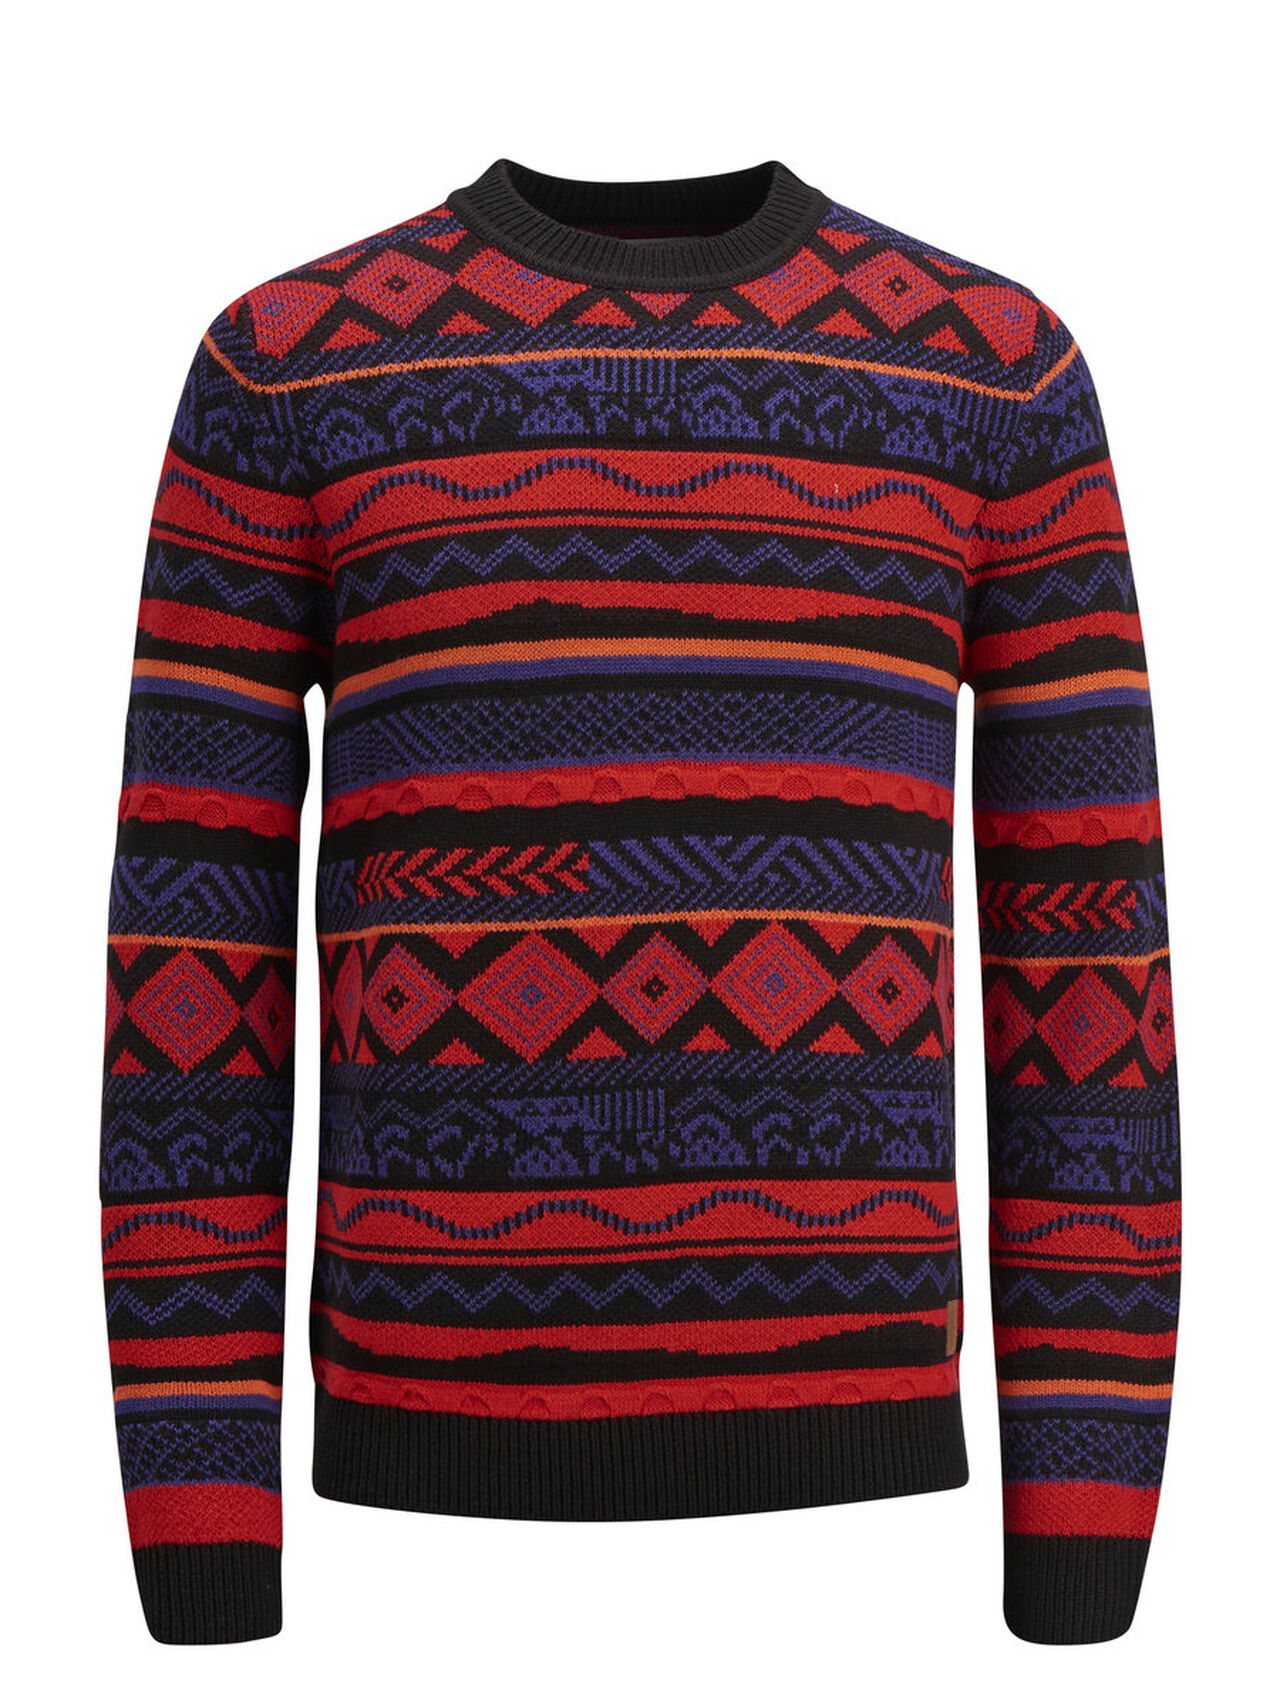 JACK & JONES Geometric Print Knitted Pullover Men Black